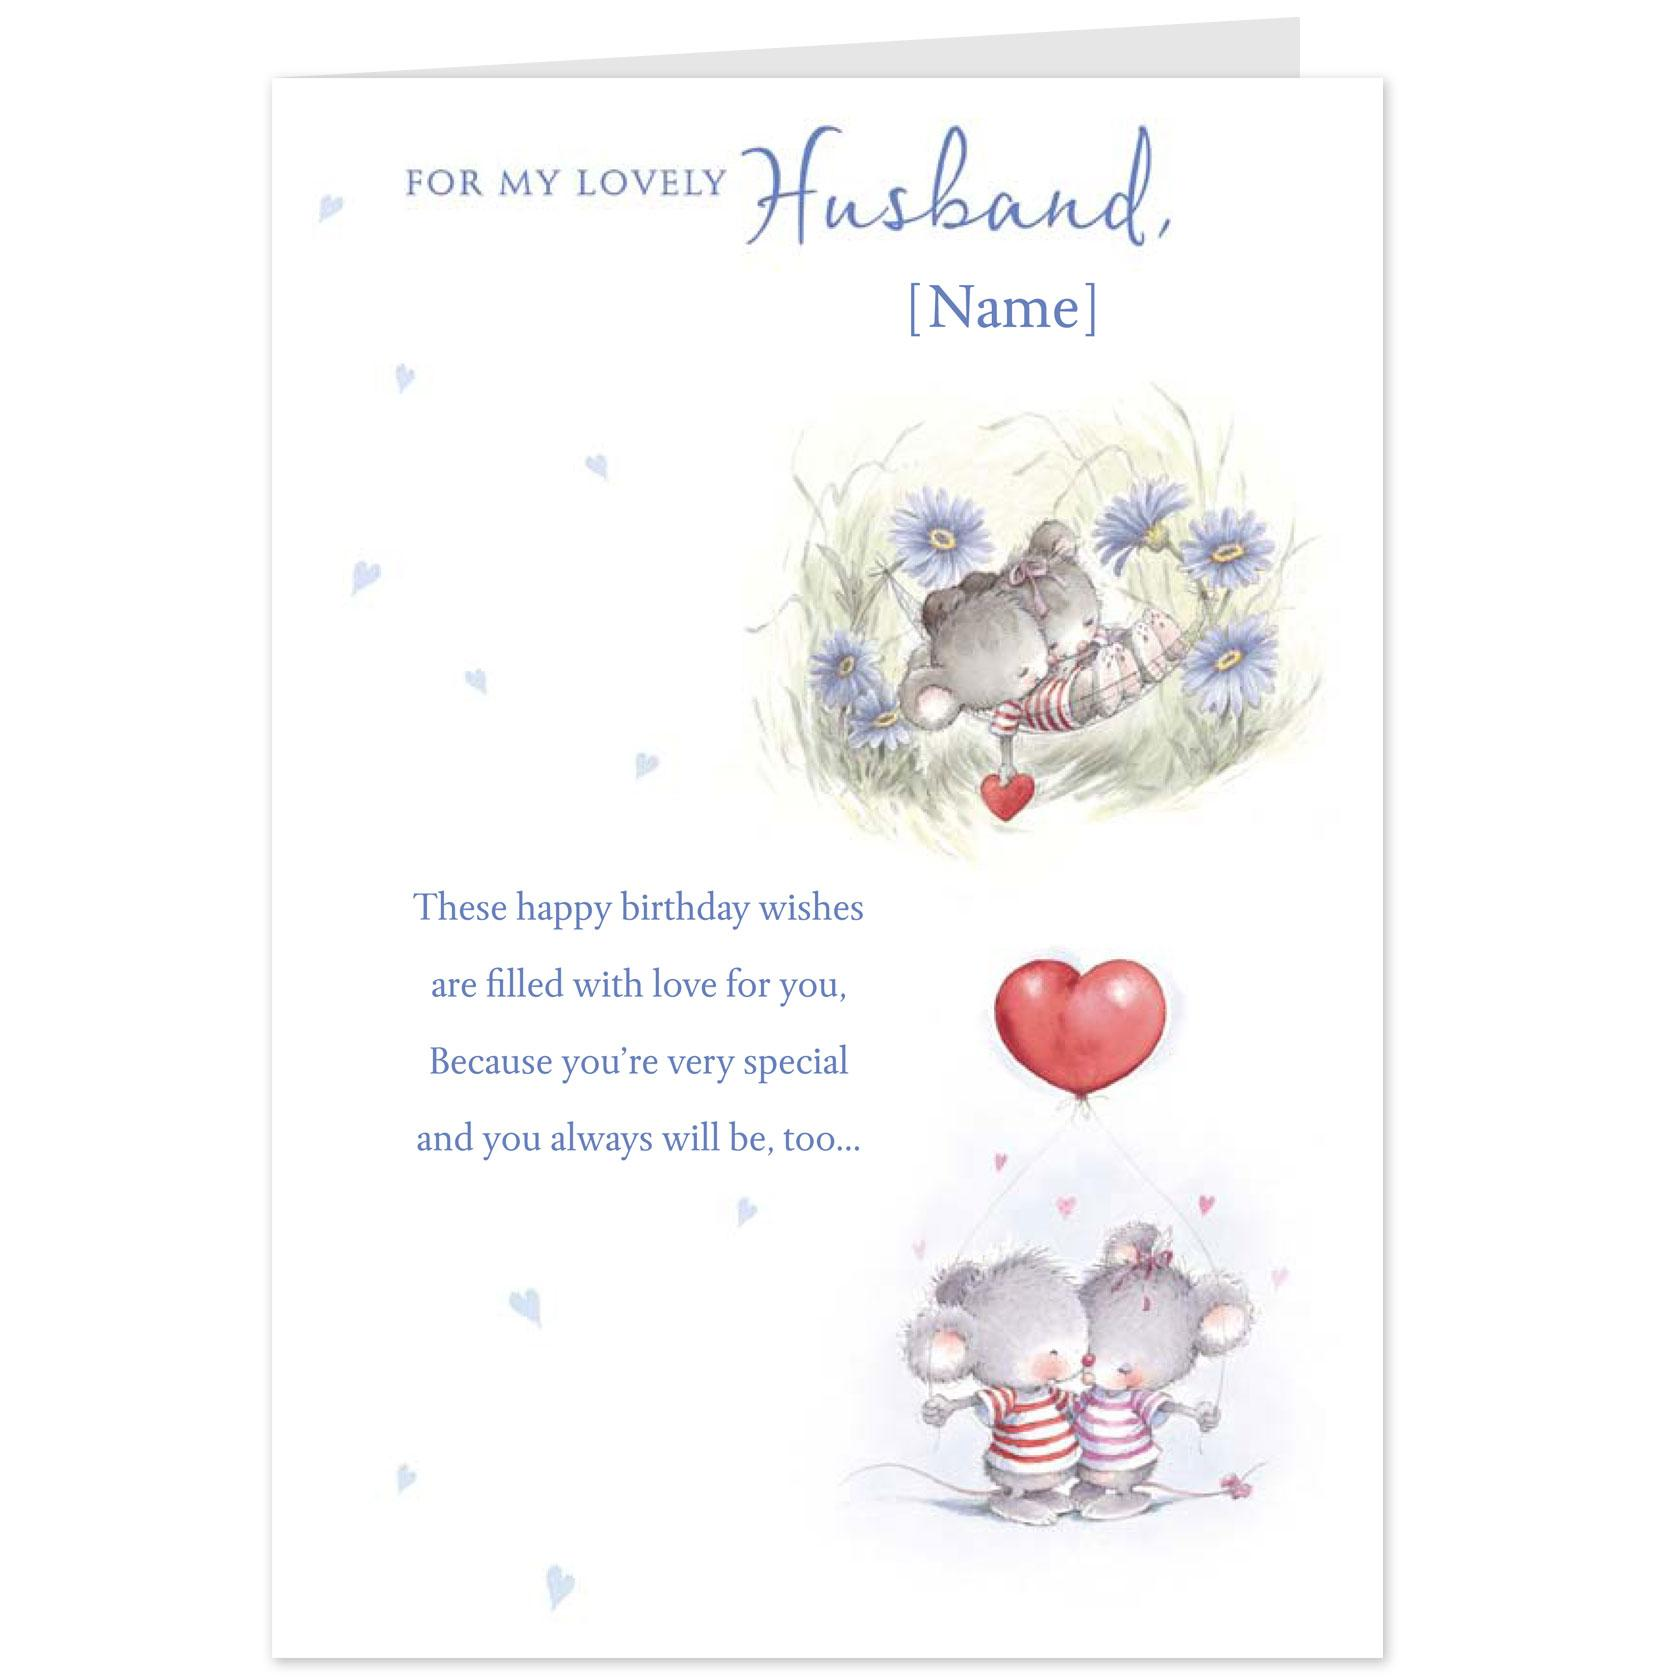 greeting card messages for husband birthday ; a35d3325b5765da4f9699a3c55832359